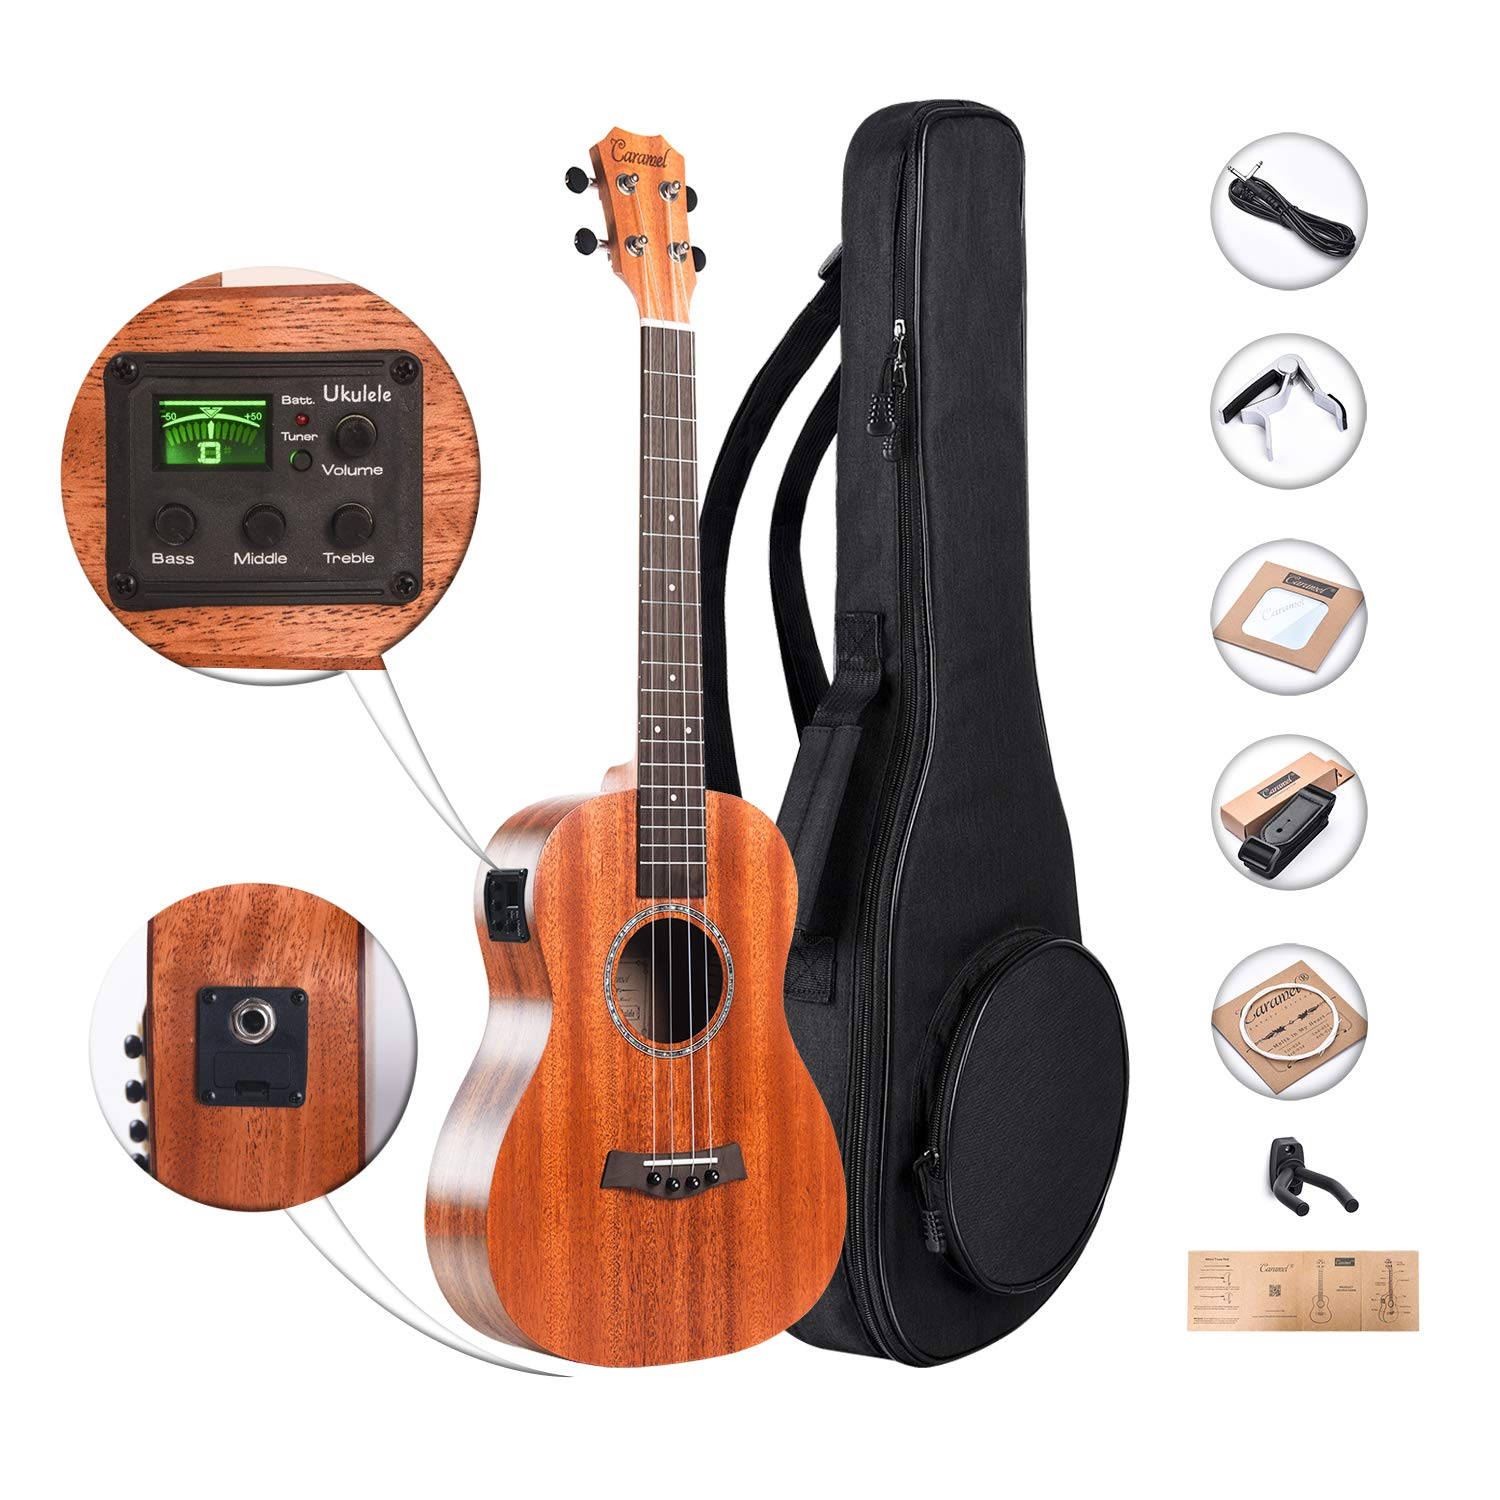 Caramel CB402 All Solid Mahogany Baritone Acoustic Electric Ukulele with Truss Rod with D-G-B-E Strings & free G-C-E-A strings, Padded Gig Bag, Strap and EQ cable